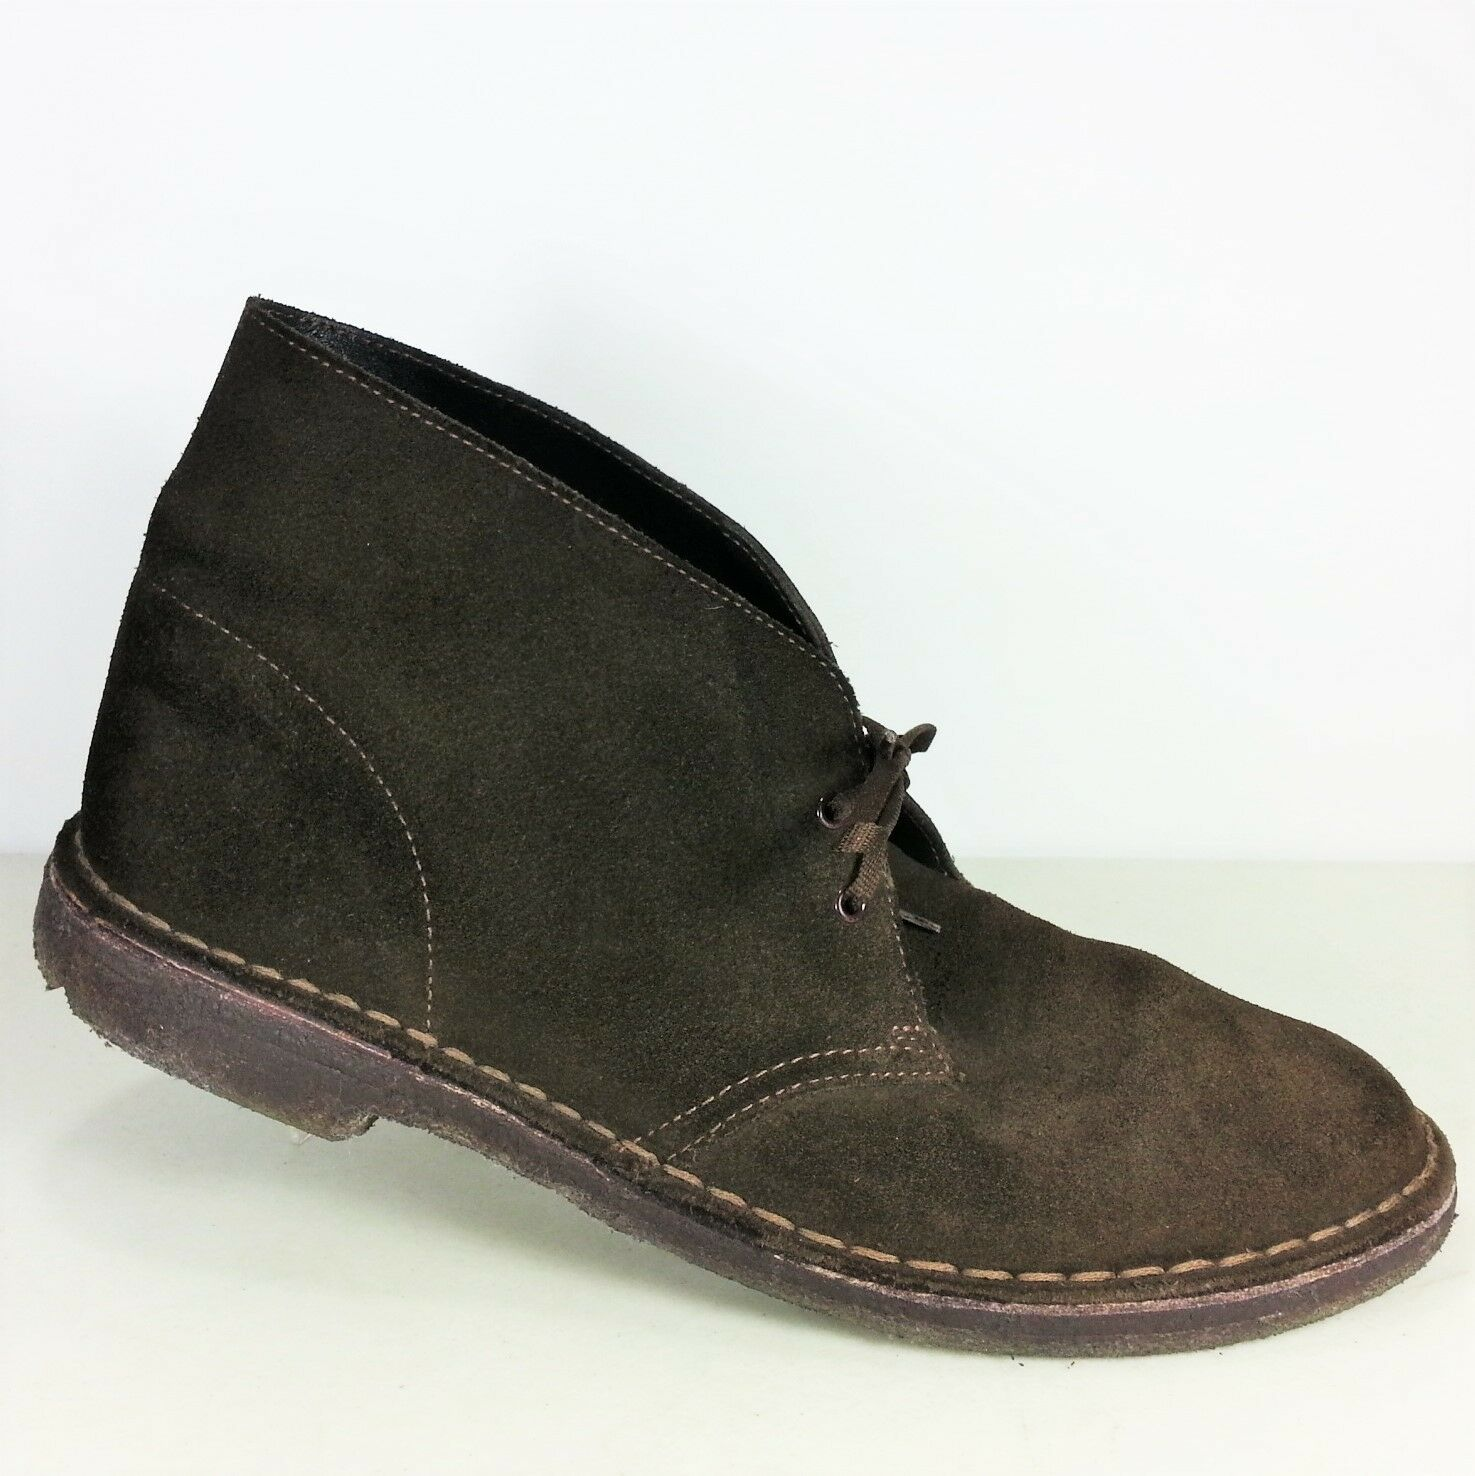 Clarks Original Desert Boots Mens Dark Brown Suede Ankle Boots shoes Size 11 US